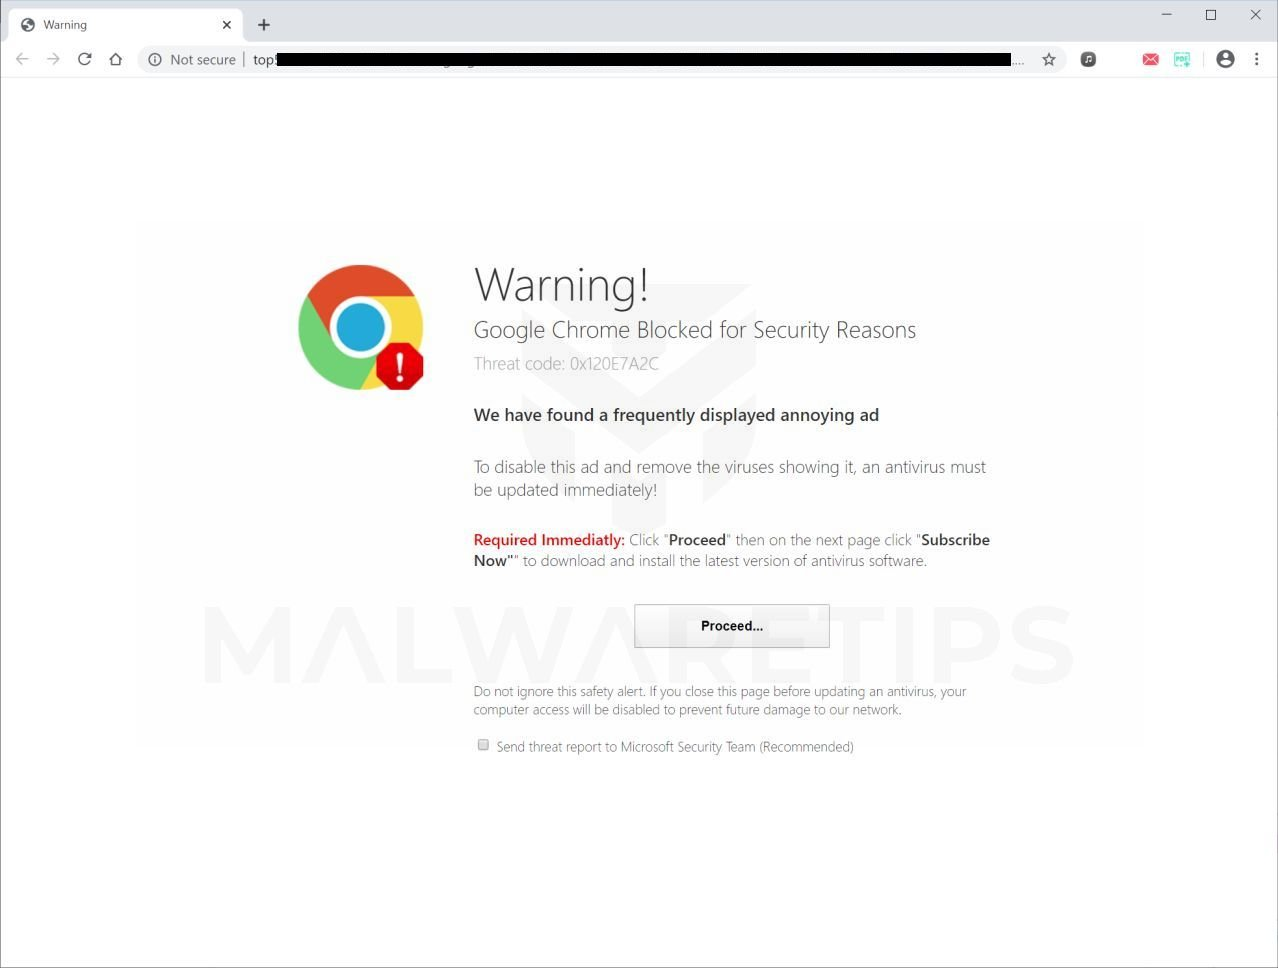 Image: Google Chrome Blocked for Security Reasons - Scam